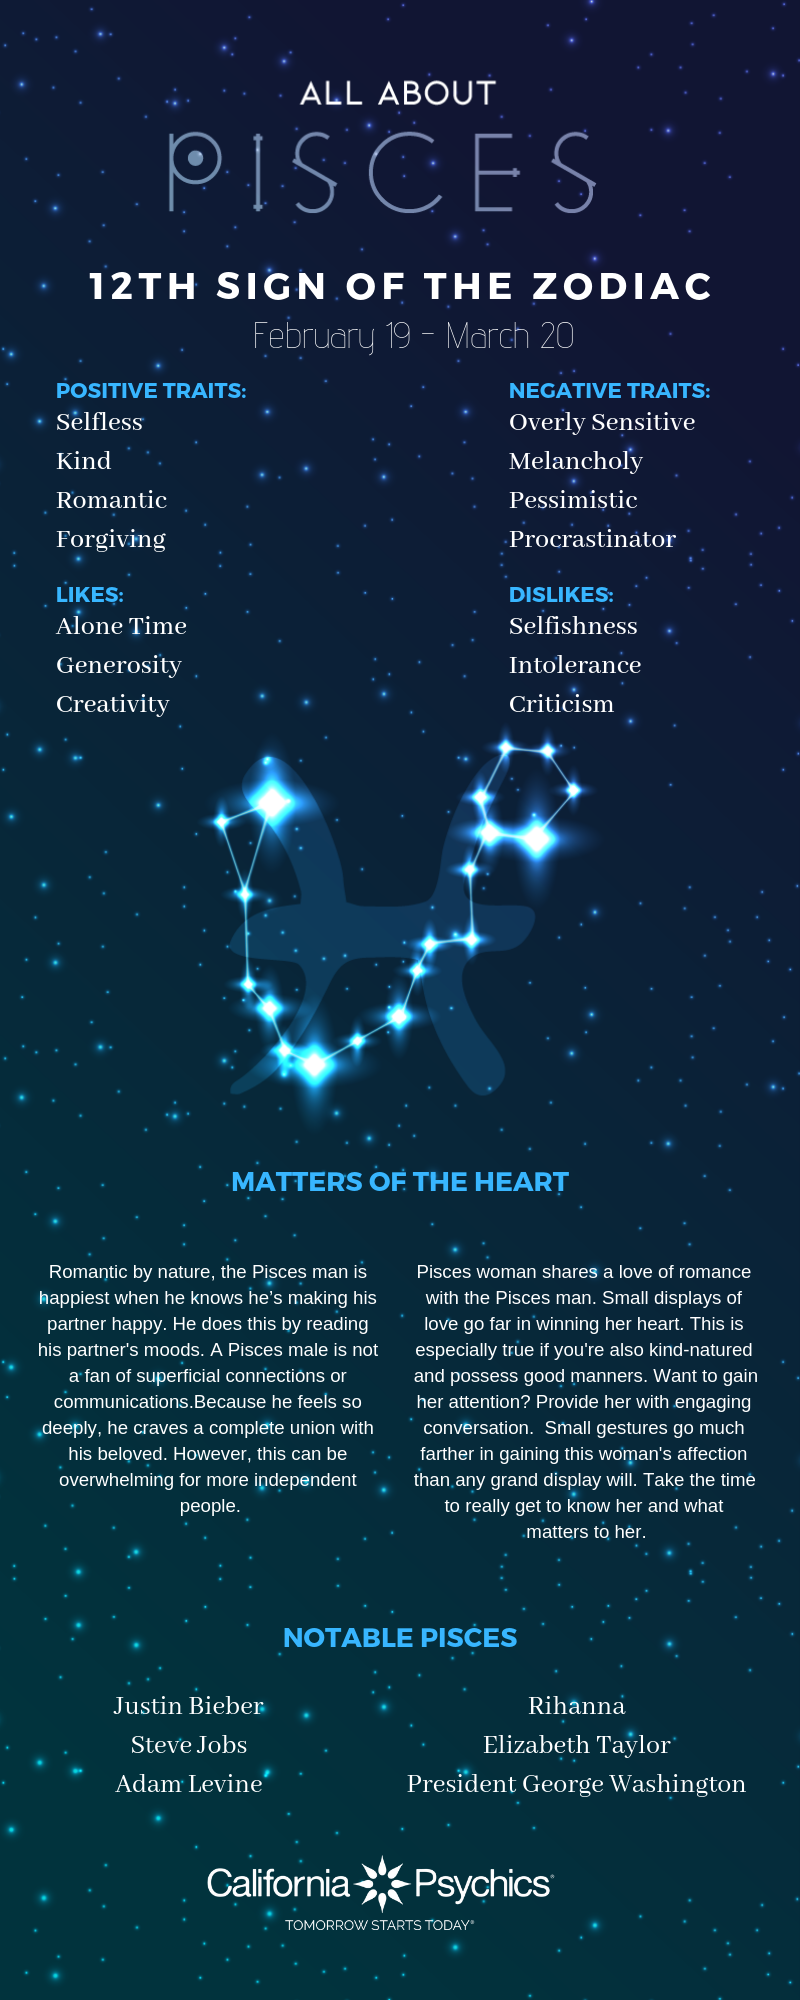 Pisces Traits: Inherent Duality and Romance | California